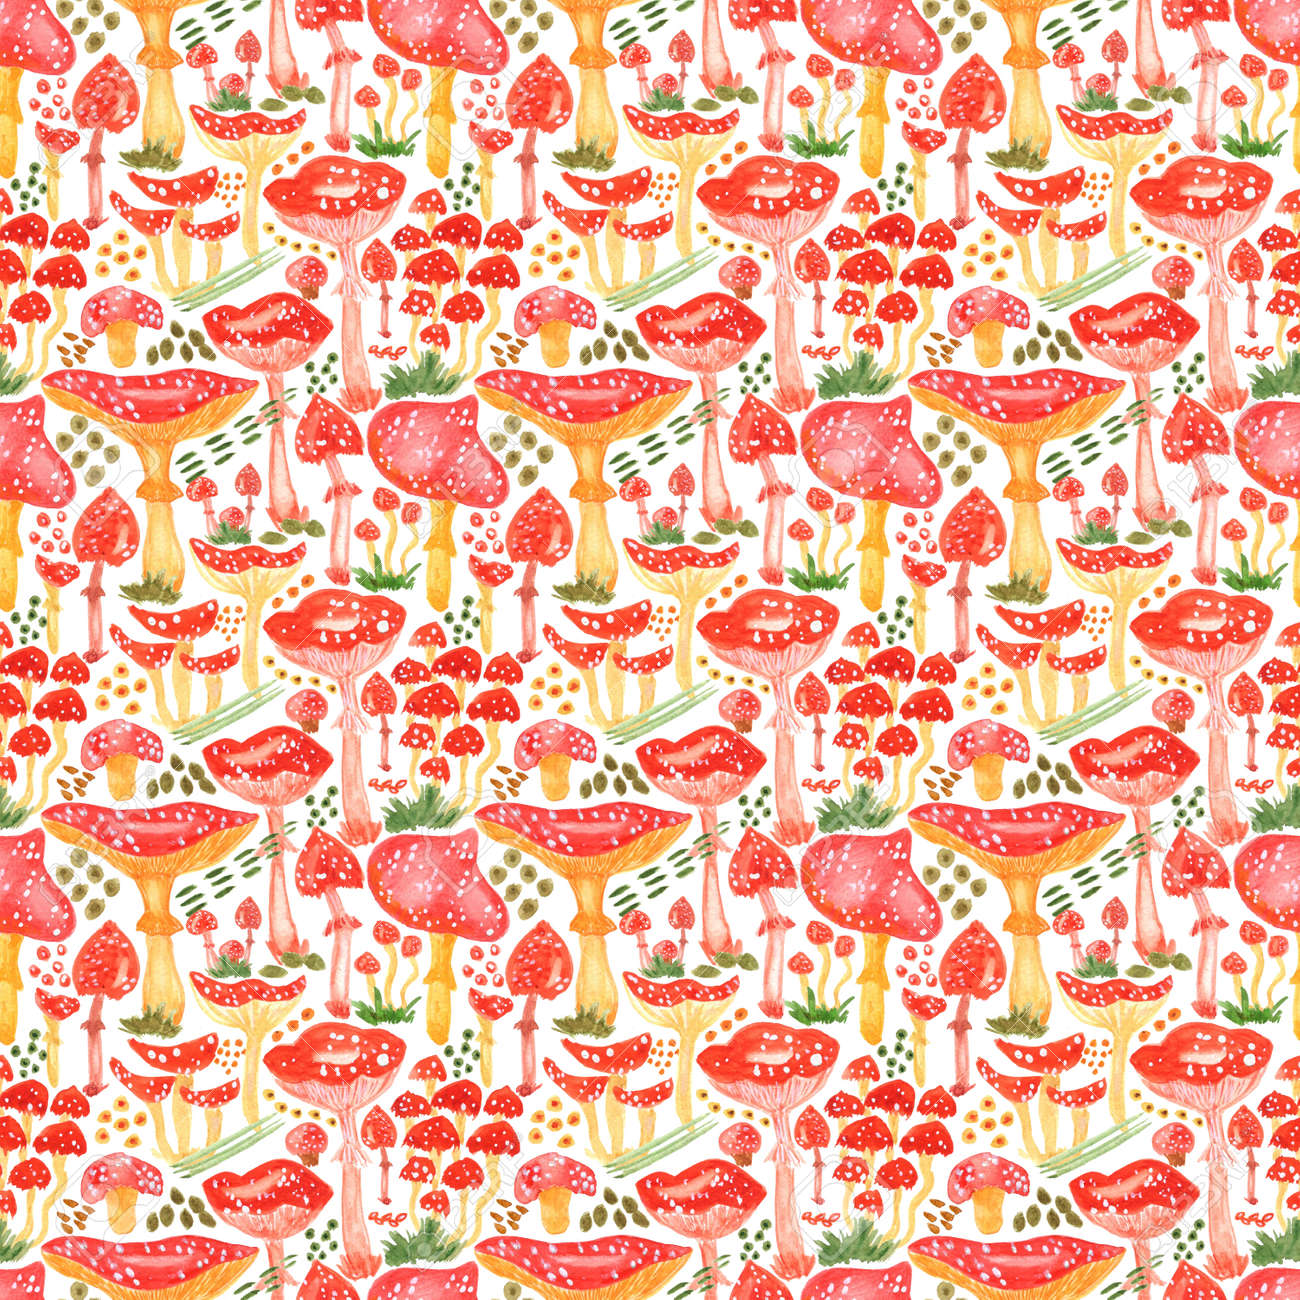 Colorful watercolor mushrooms seamless pattern. Hand Illustration for creating fabrics, wallpapers, gift wrapping paper, invitations, textile, scrapbooking. Isolated on white background. - 165387221